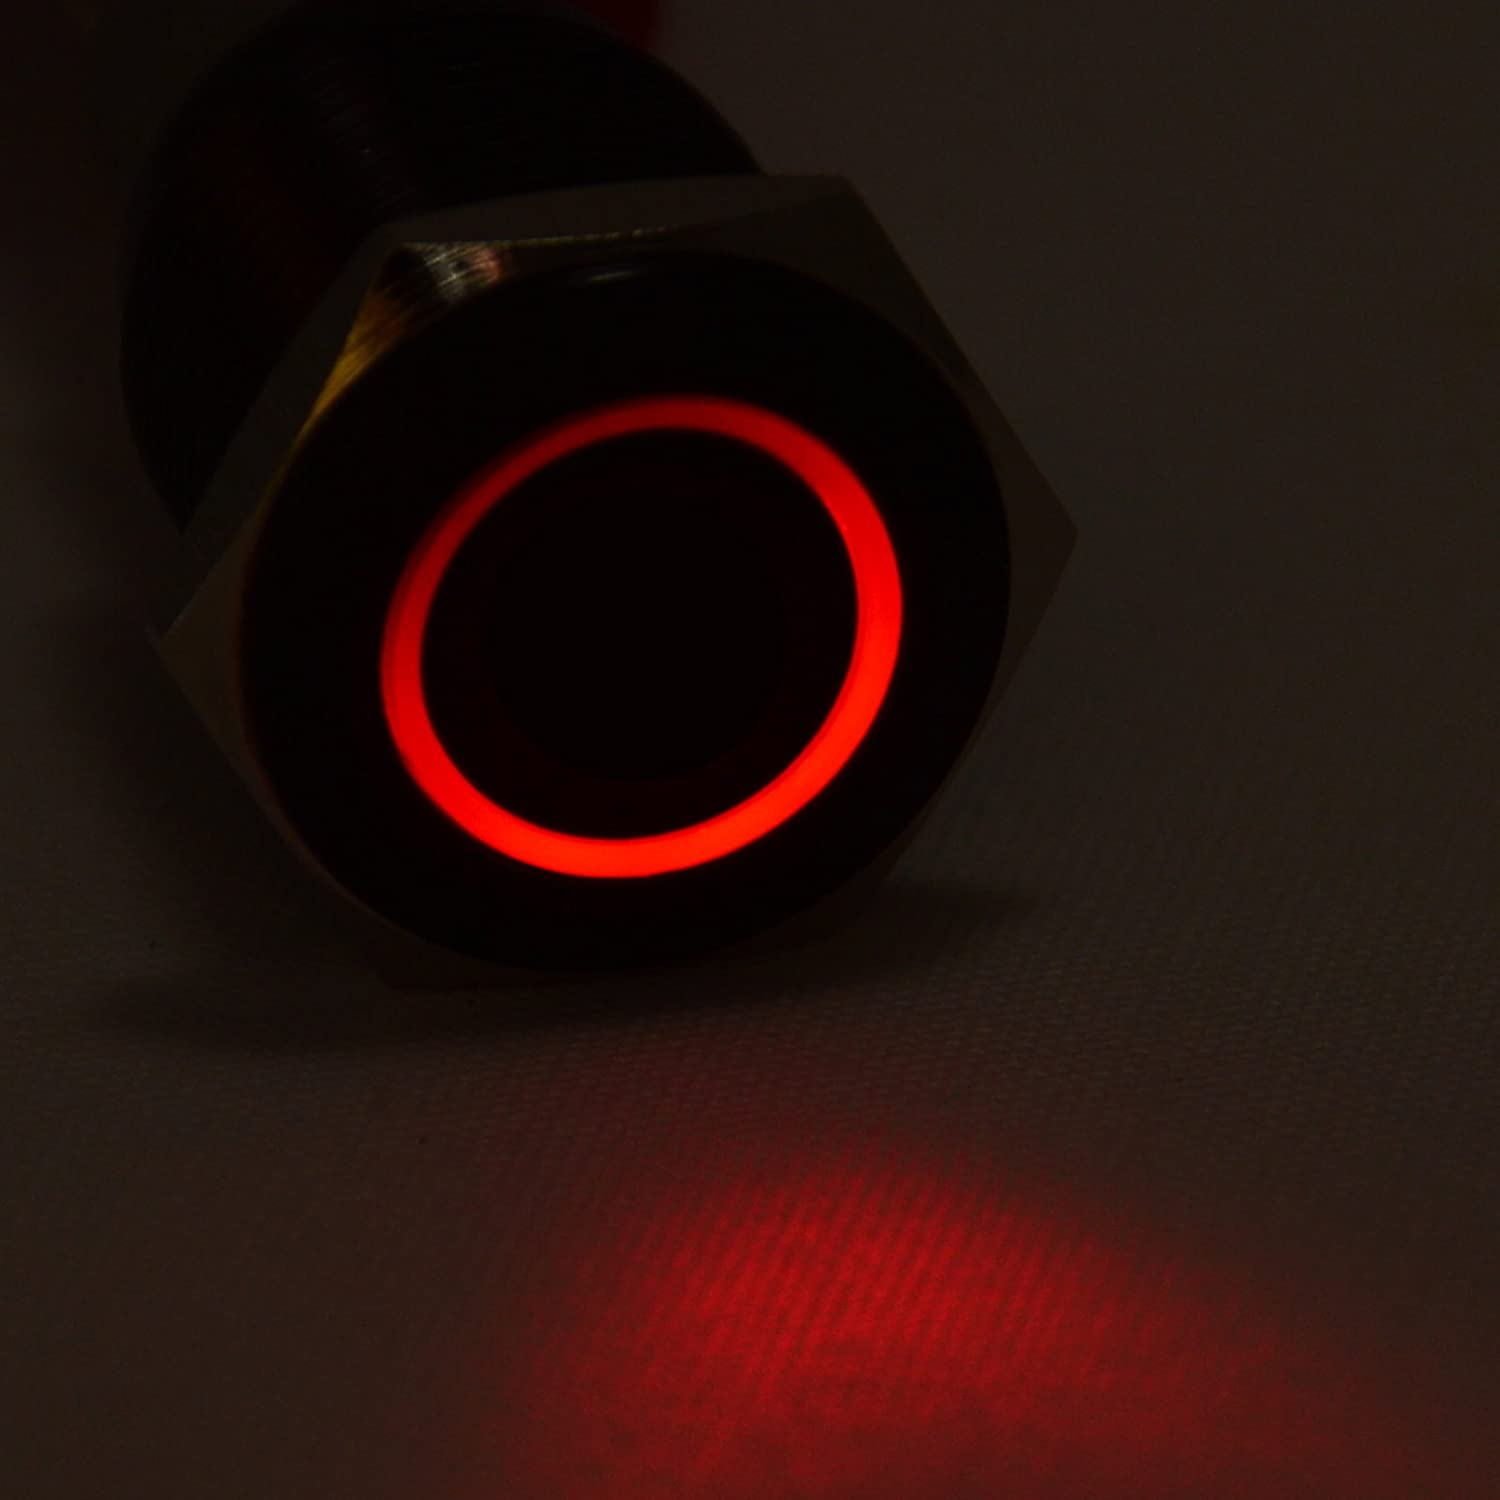 JacobsParts Latching Maintained Pushbutton ON//OFF Switch Black Aluminum Metal with Red LED fits 5//8 Diameter Panel Cutout Hole LTCH-N3-RED 16mm